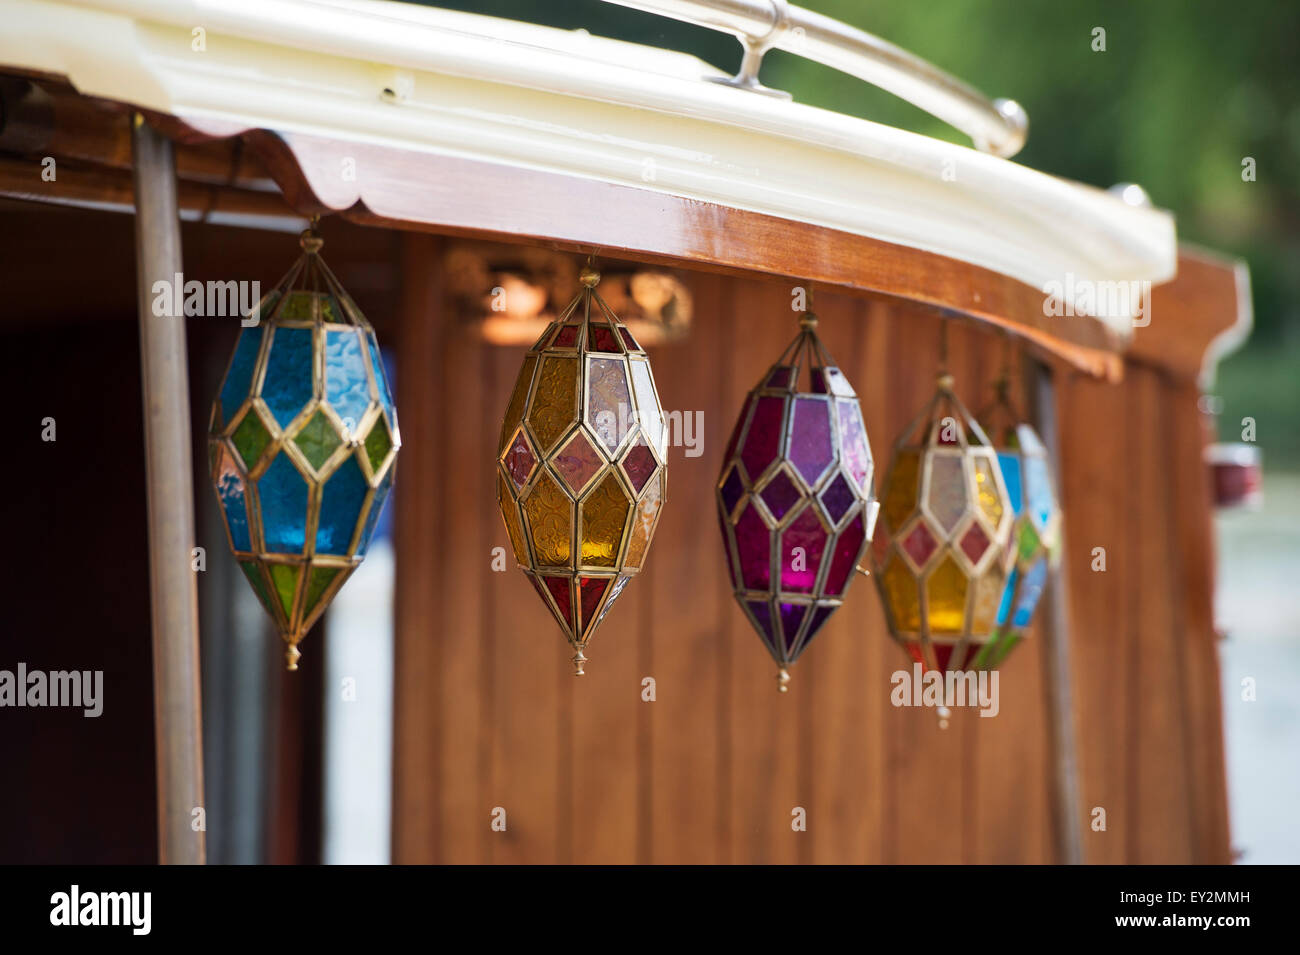 Colourful glass candle holders hanging on a wooden boat at the Thames Traditional Boat Festival, Henley On Thames, - Stock Image